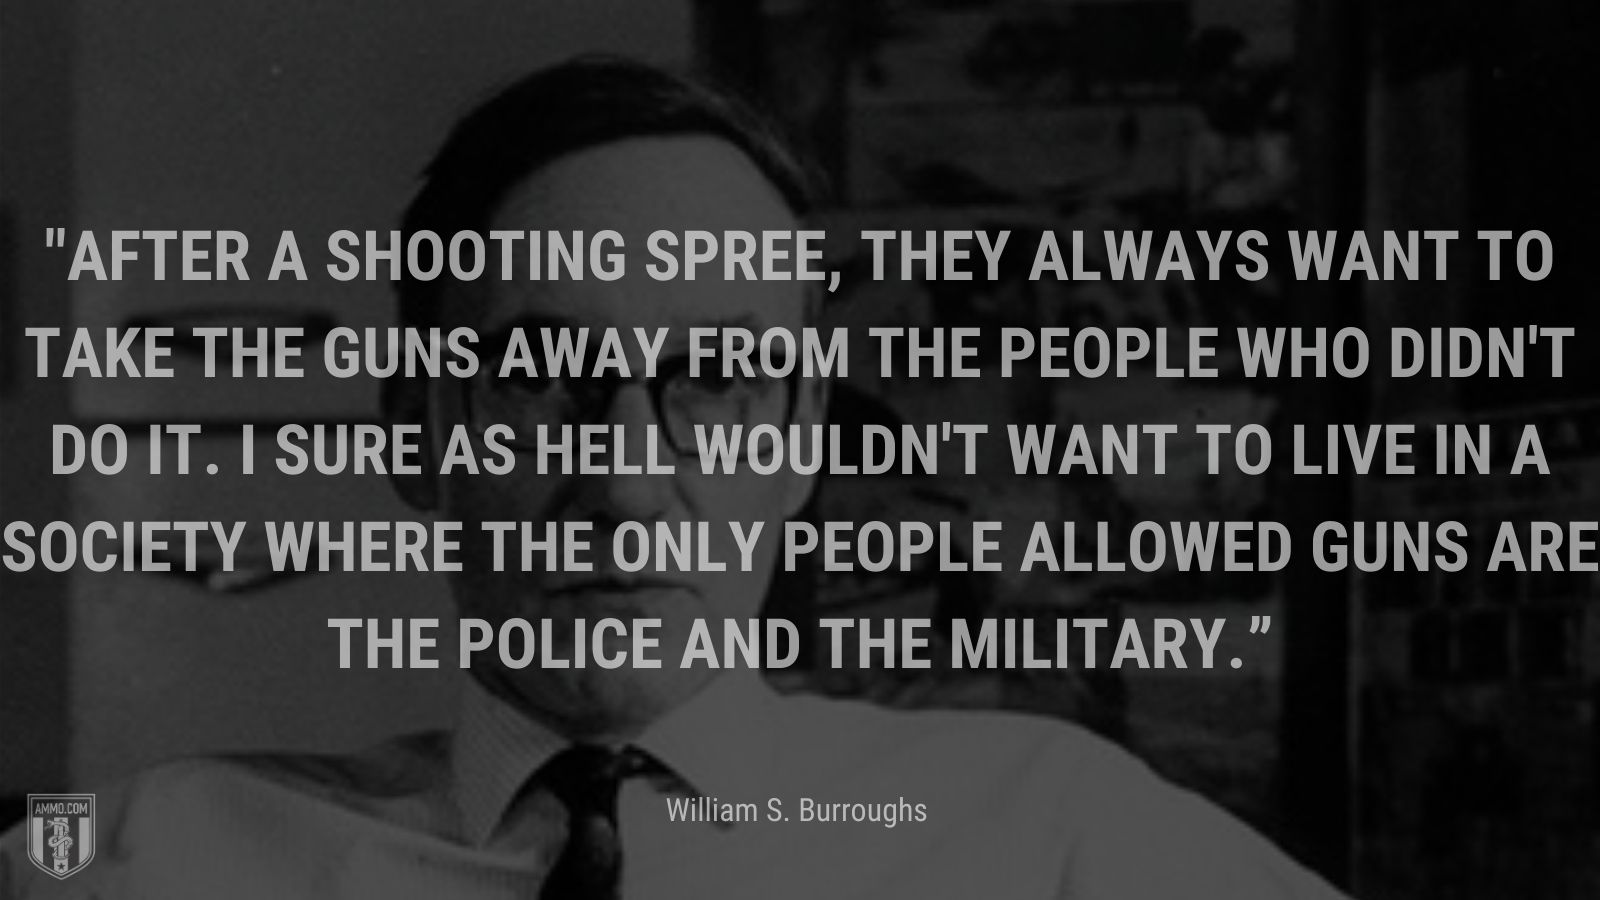 """""""After a shooting spree, they always want to take the guns away from the people who didn't do it. I sure as hell wouldn't want to live in a society where the only people allowed guns are the police and the military."""" - William S. Burroughs"""